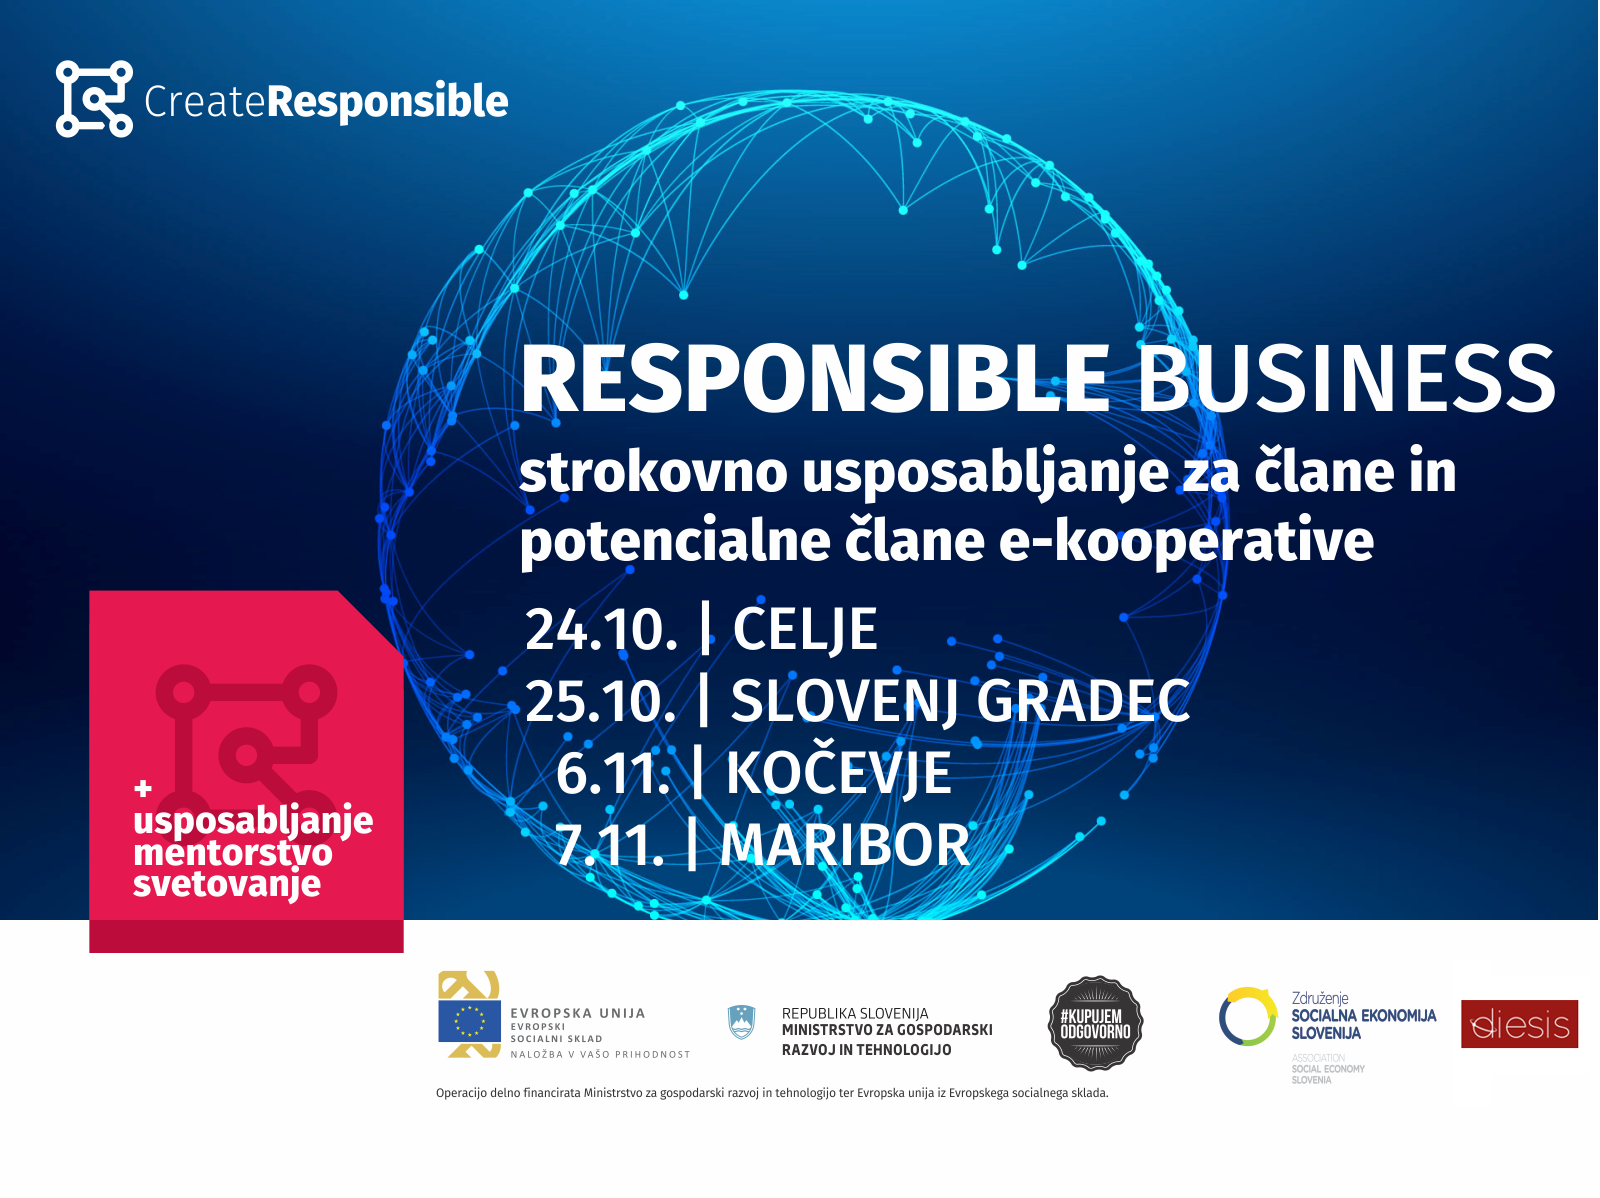 RESPONSIBLE-BUSINESS-skupni-1